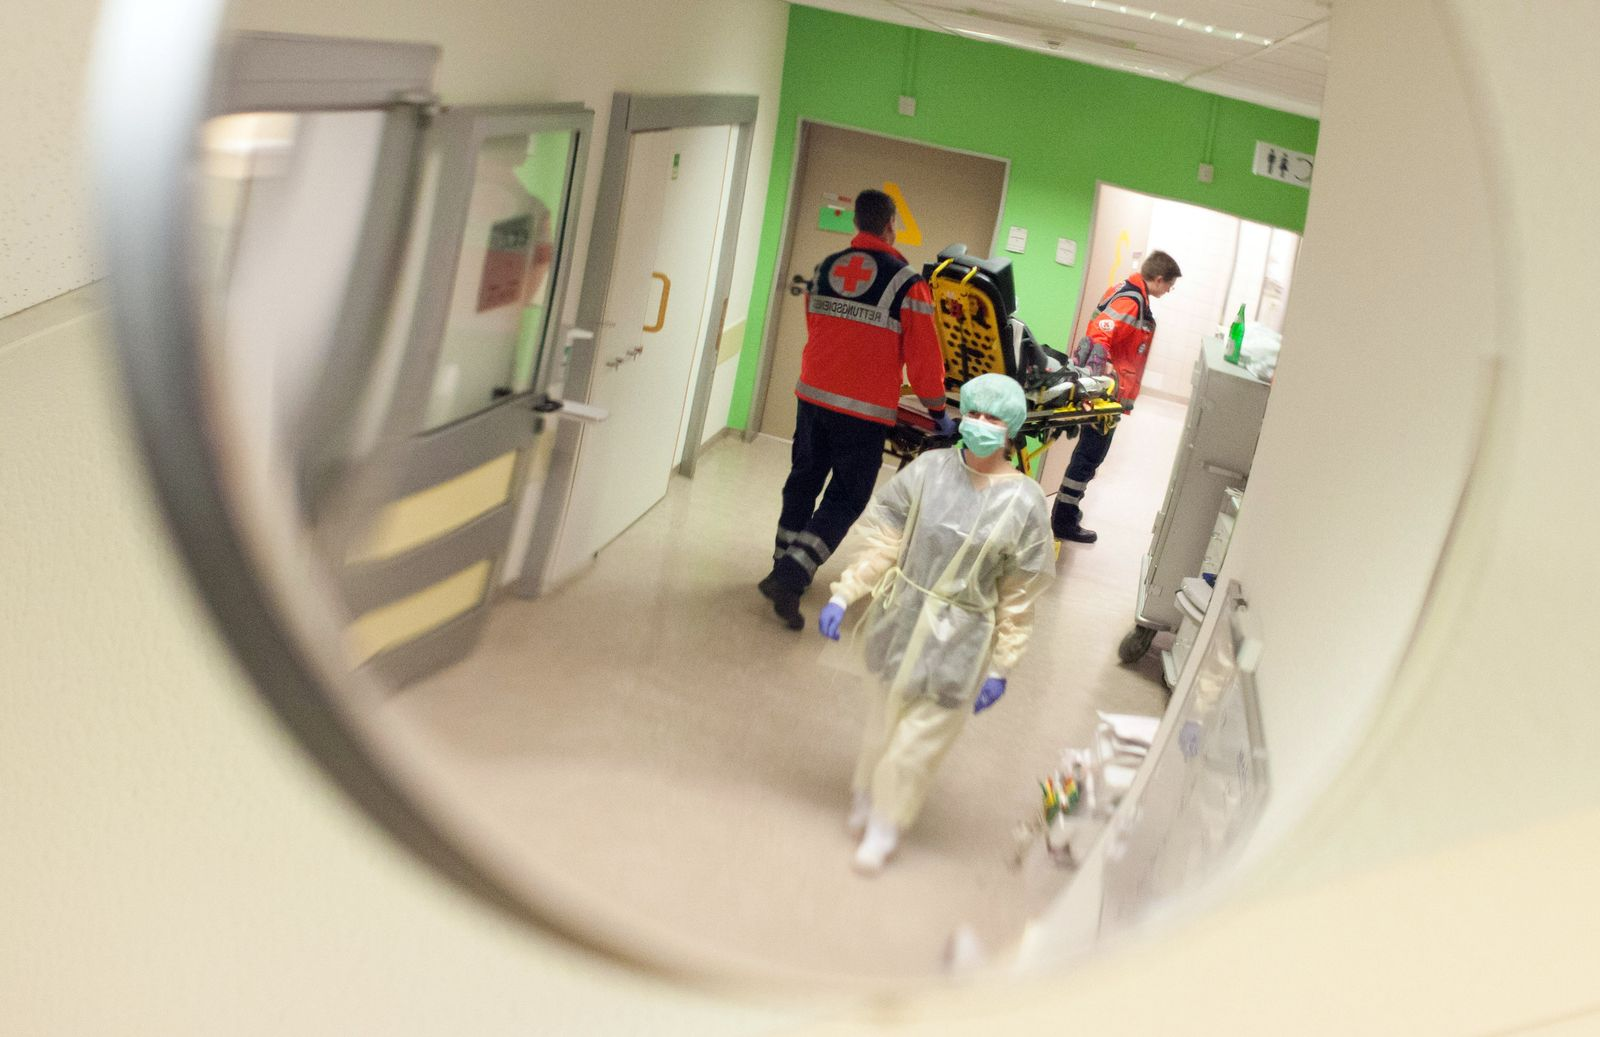 Mers-Patient in Osnabrück